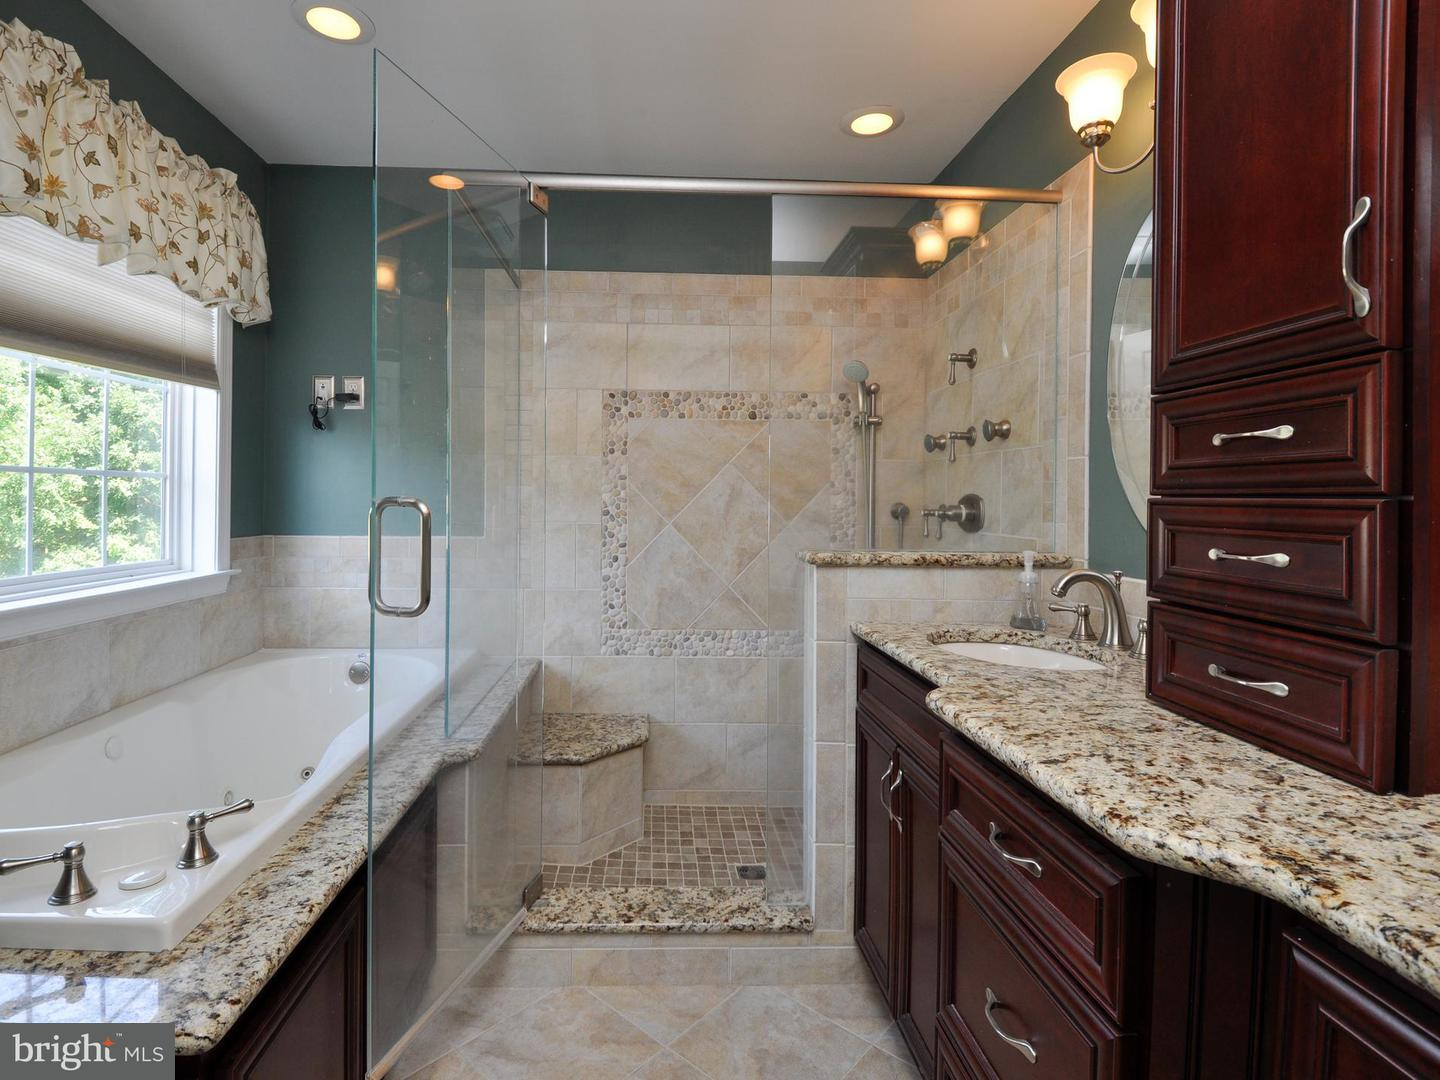 Other Residential for Rent at 4115 Fern Ct King George, Virginia 22485 United States